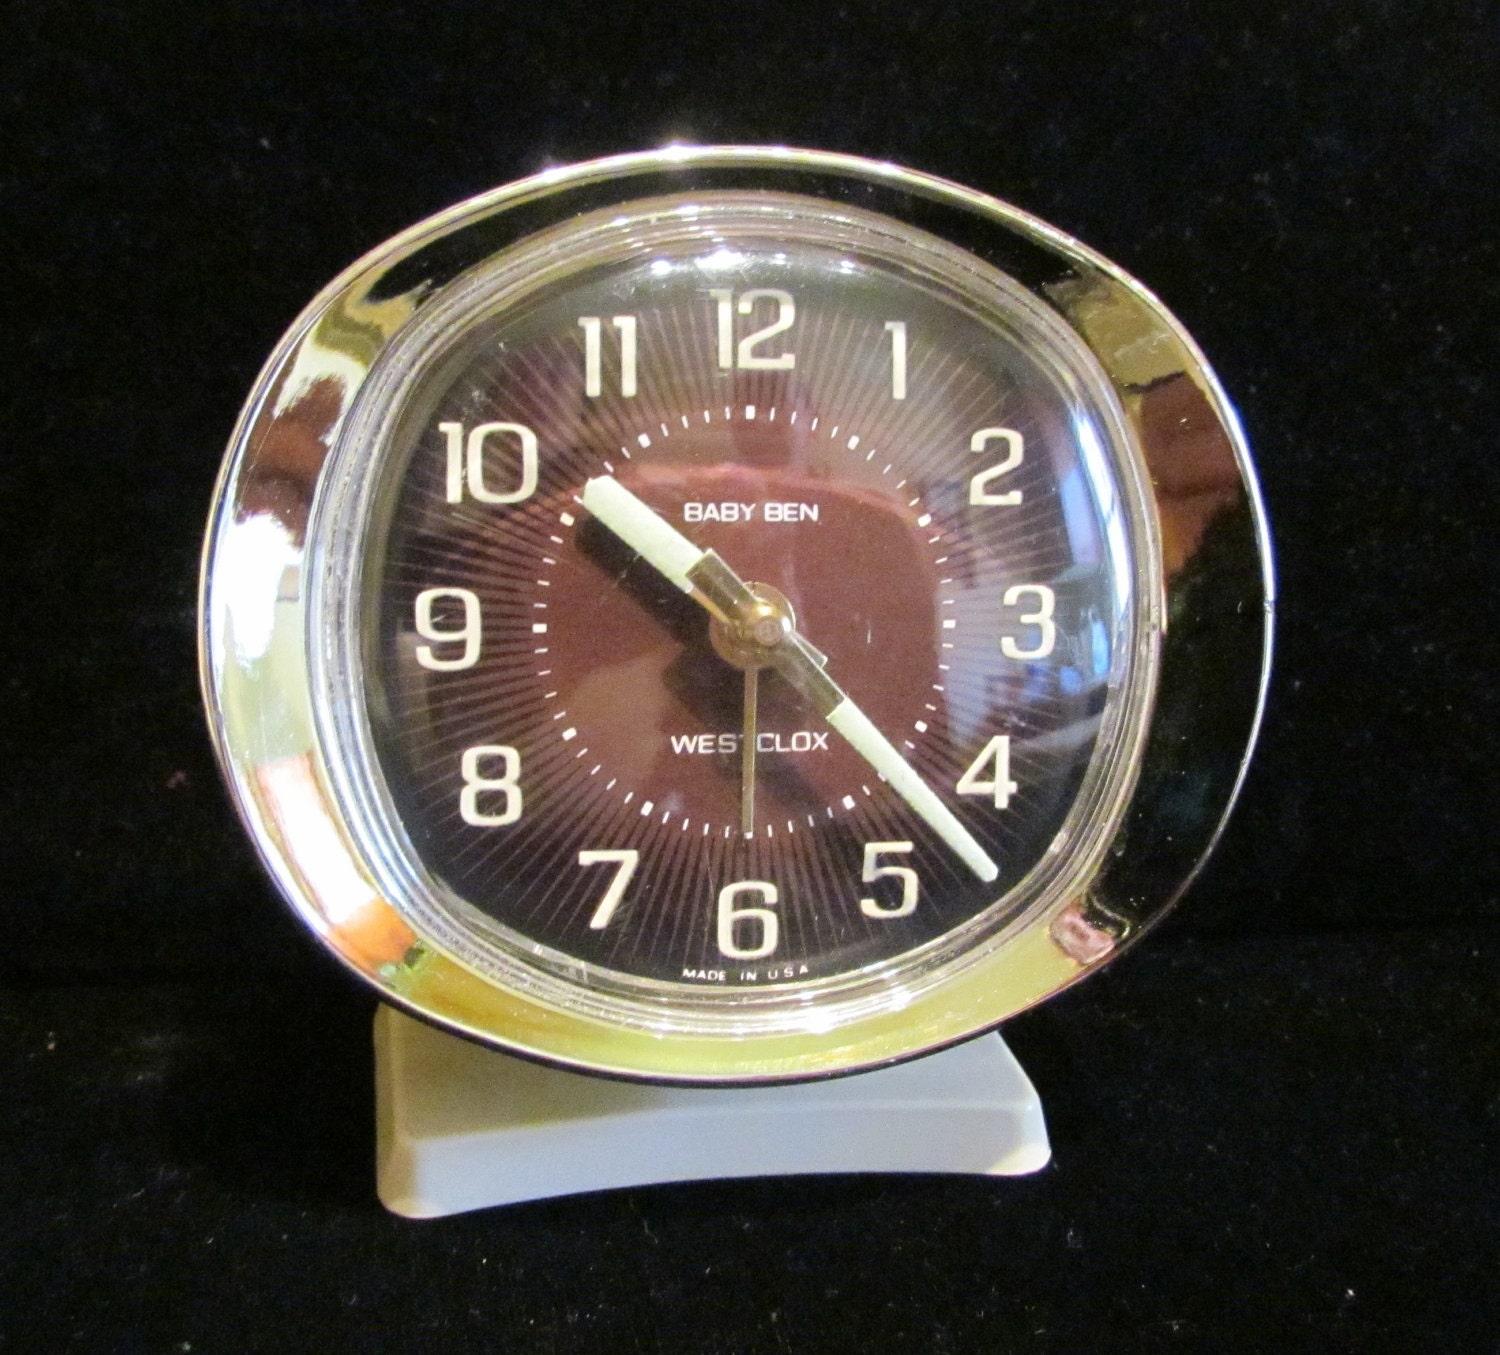 Vintage Westclox Baby Ben Travel Alarm Clock 1950s Made In Usa